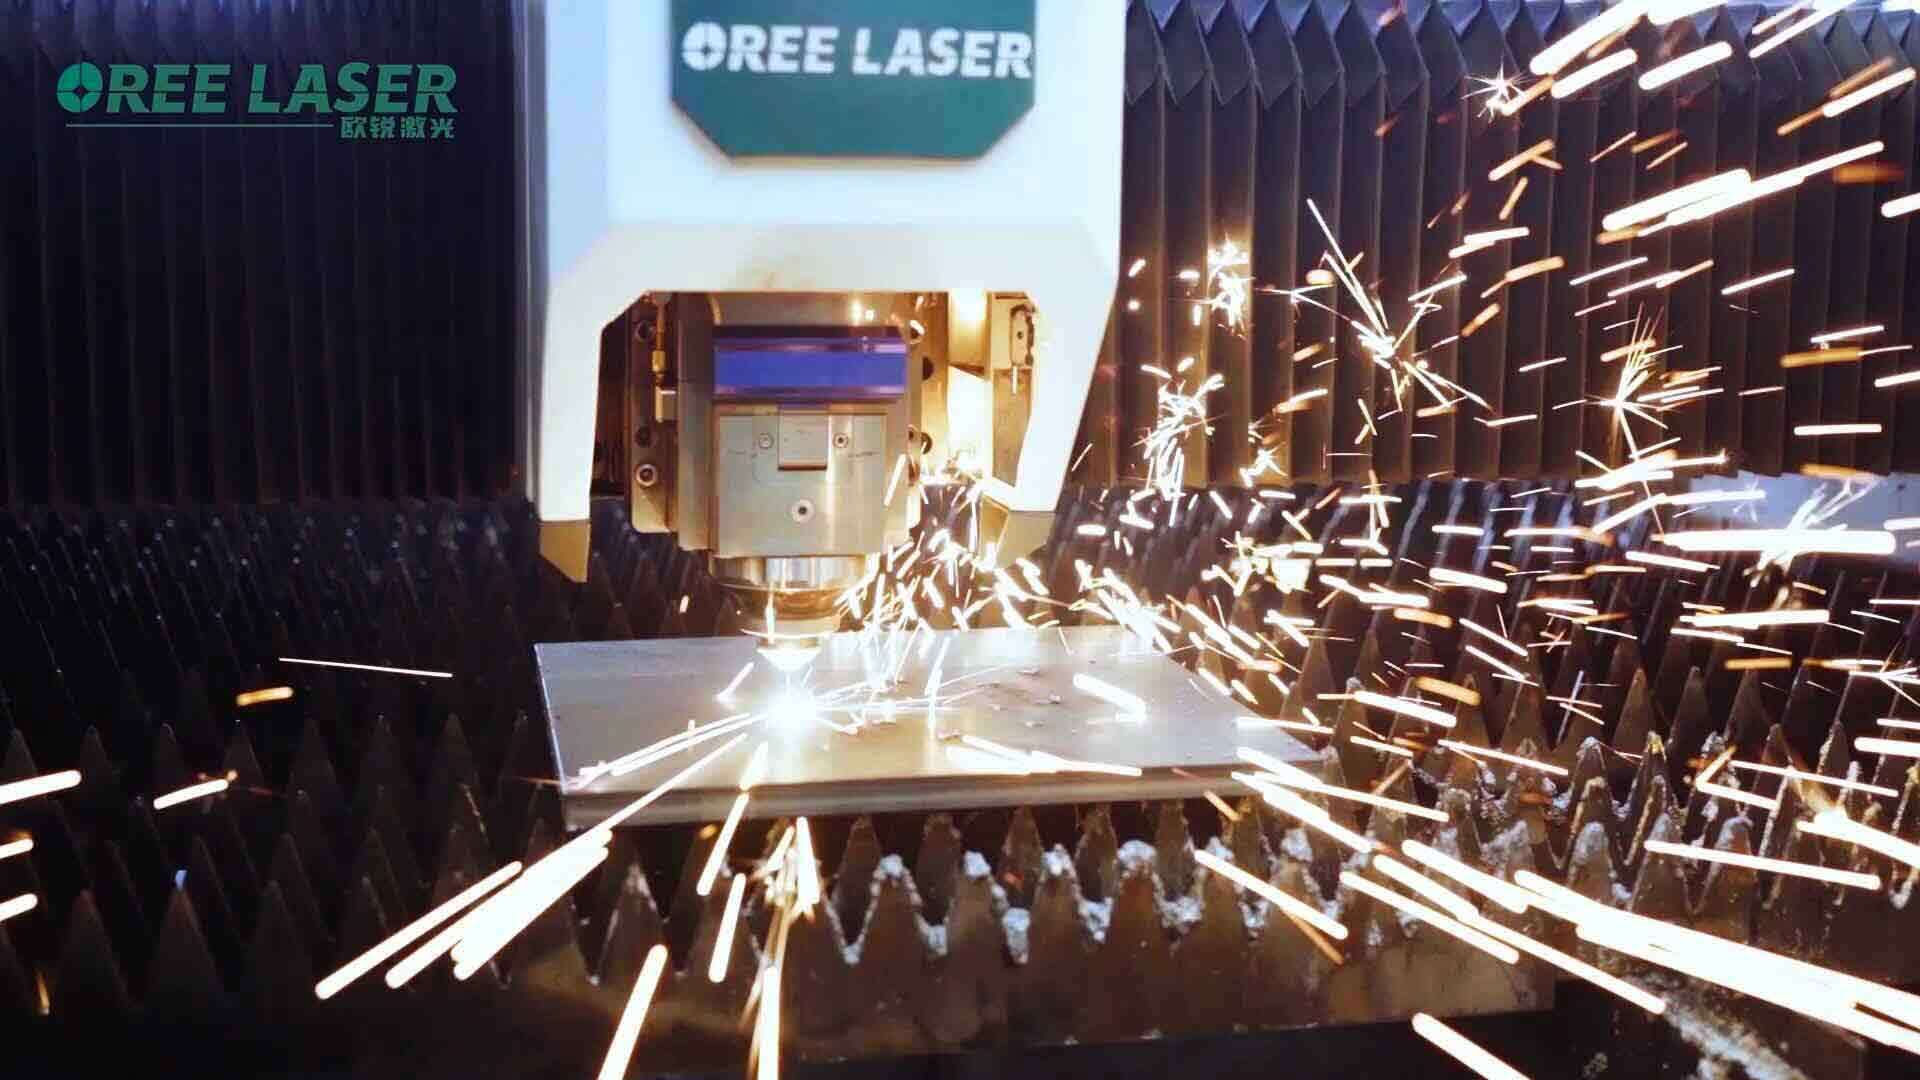 What are the advantages of laser drilling?